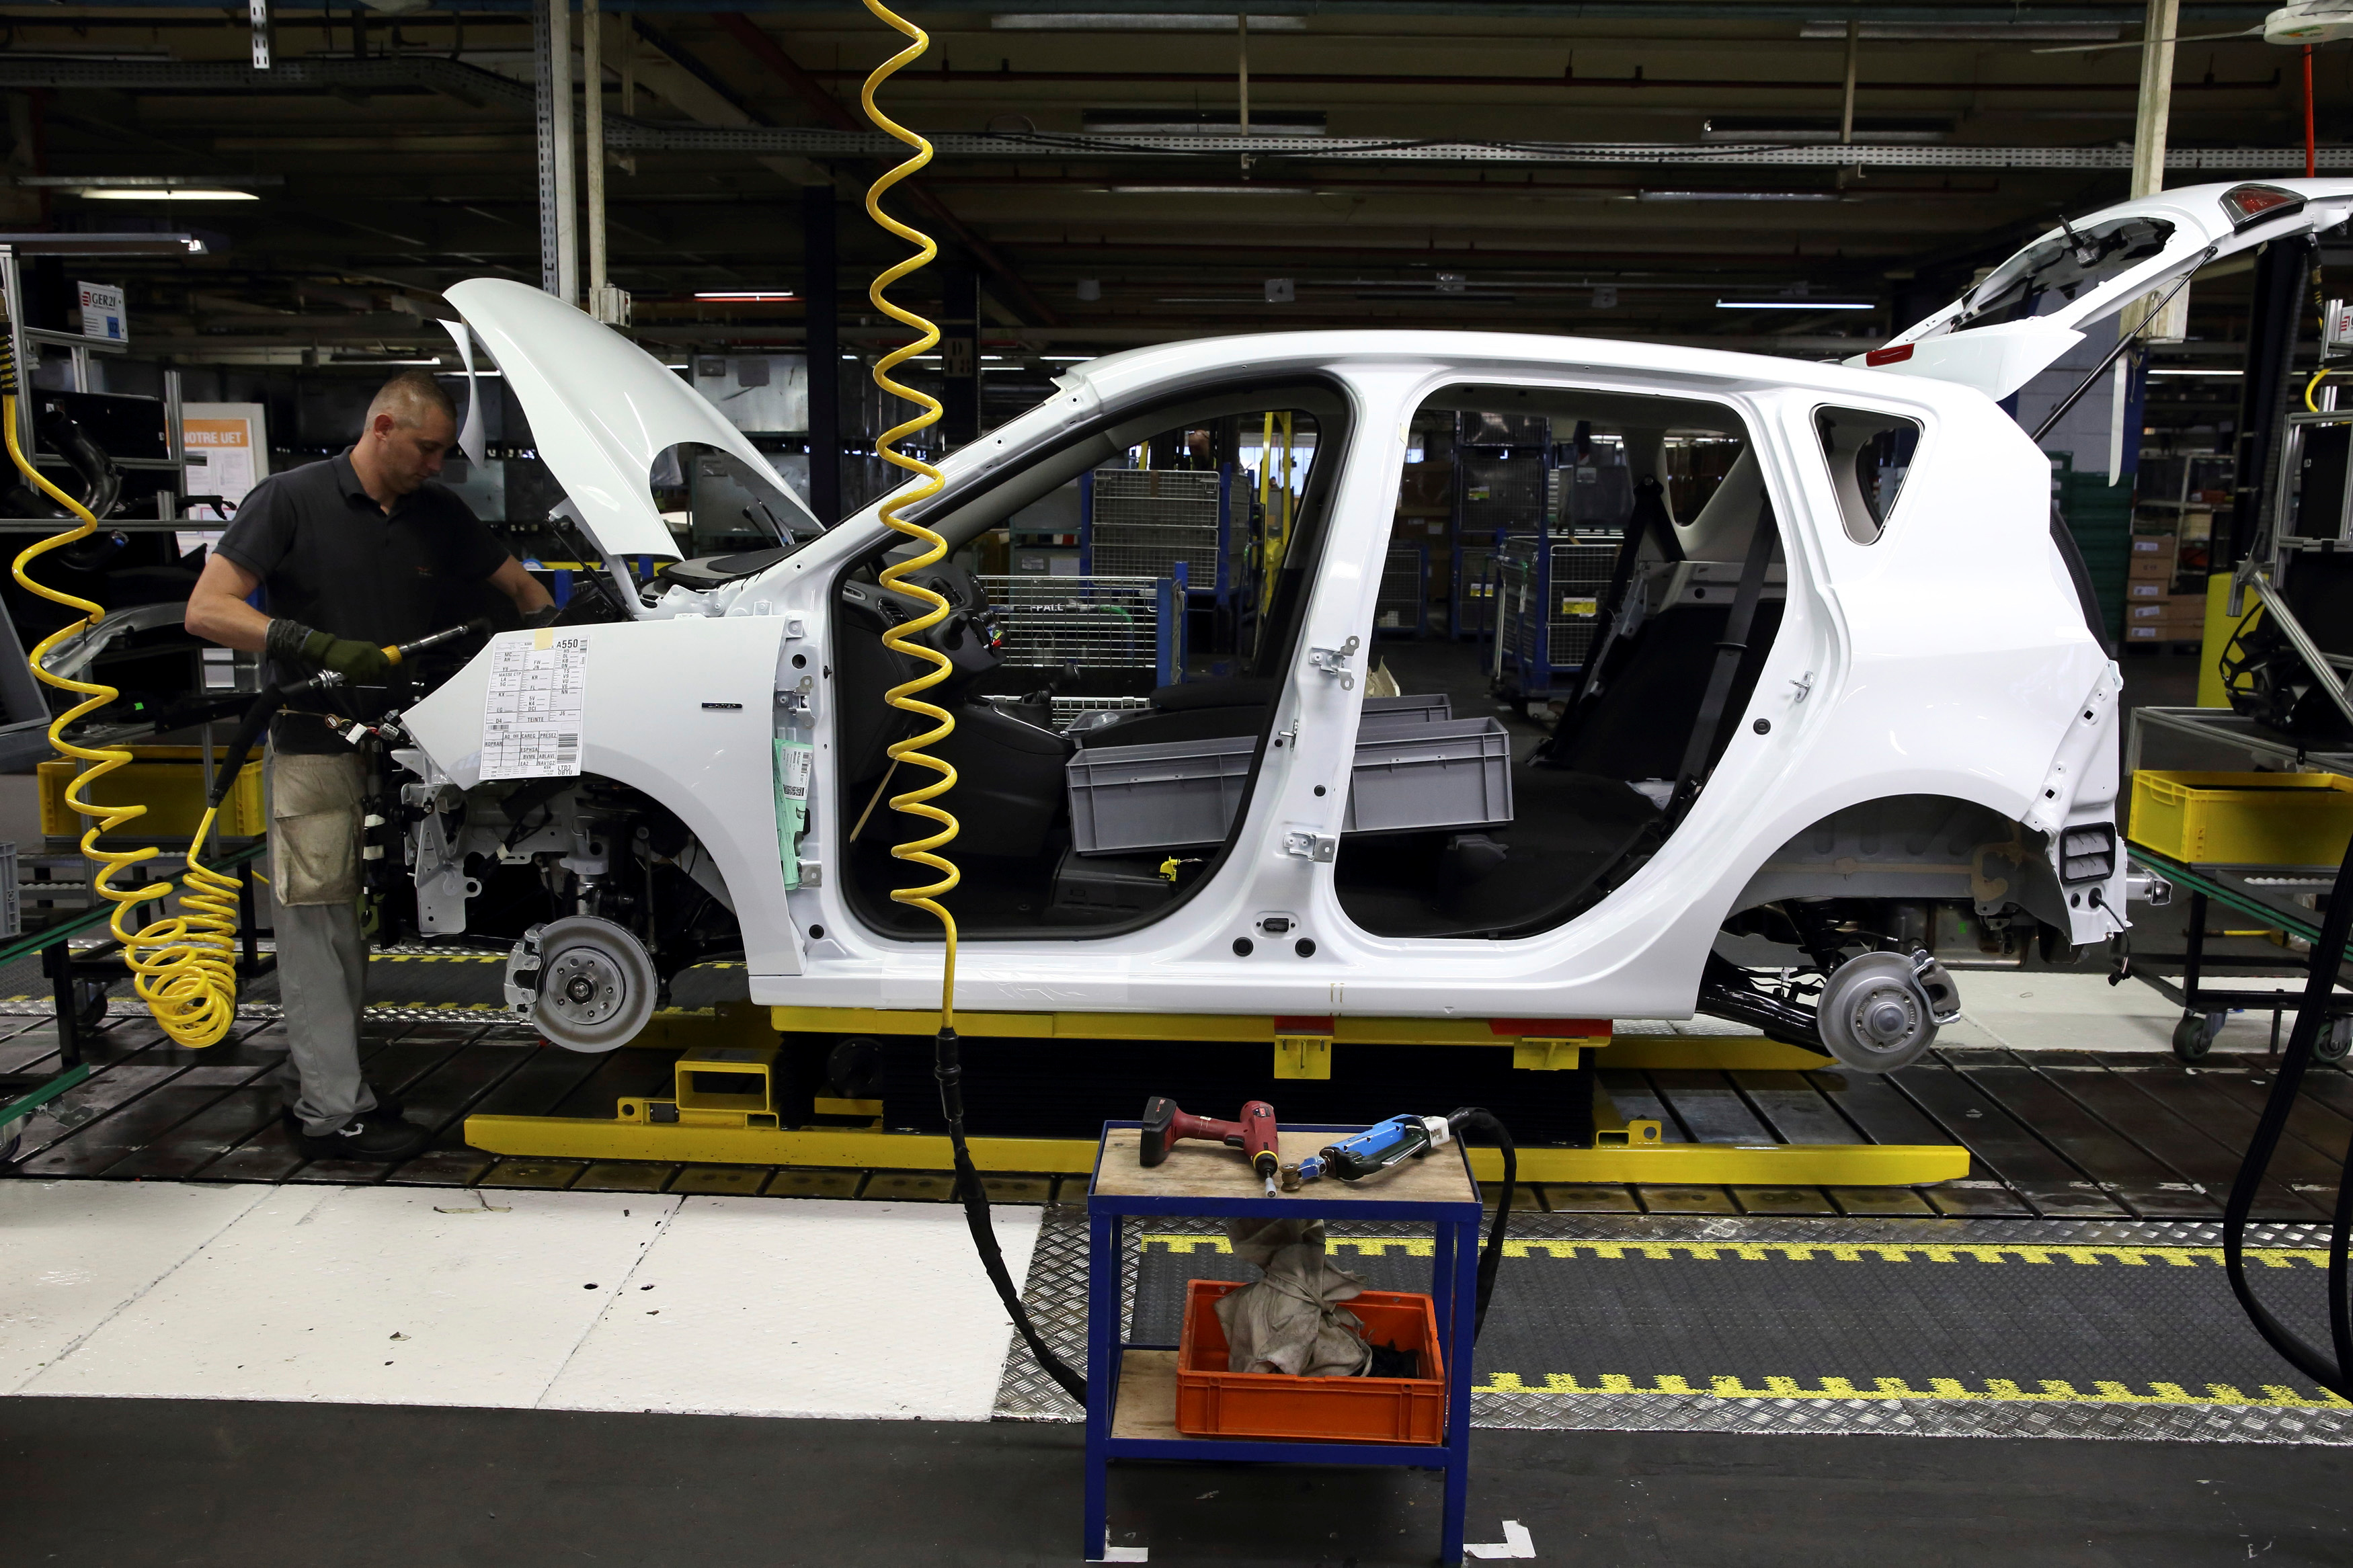 An employee works on a Renault Scenic as it moves along the assembly line at the Renault automobile assembly plant in Douai, northern France, November 26, 2014. REUTERS/Pascal Rossignol/File Photo